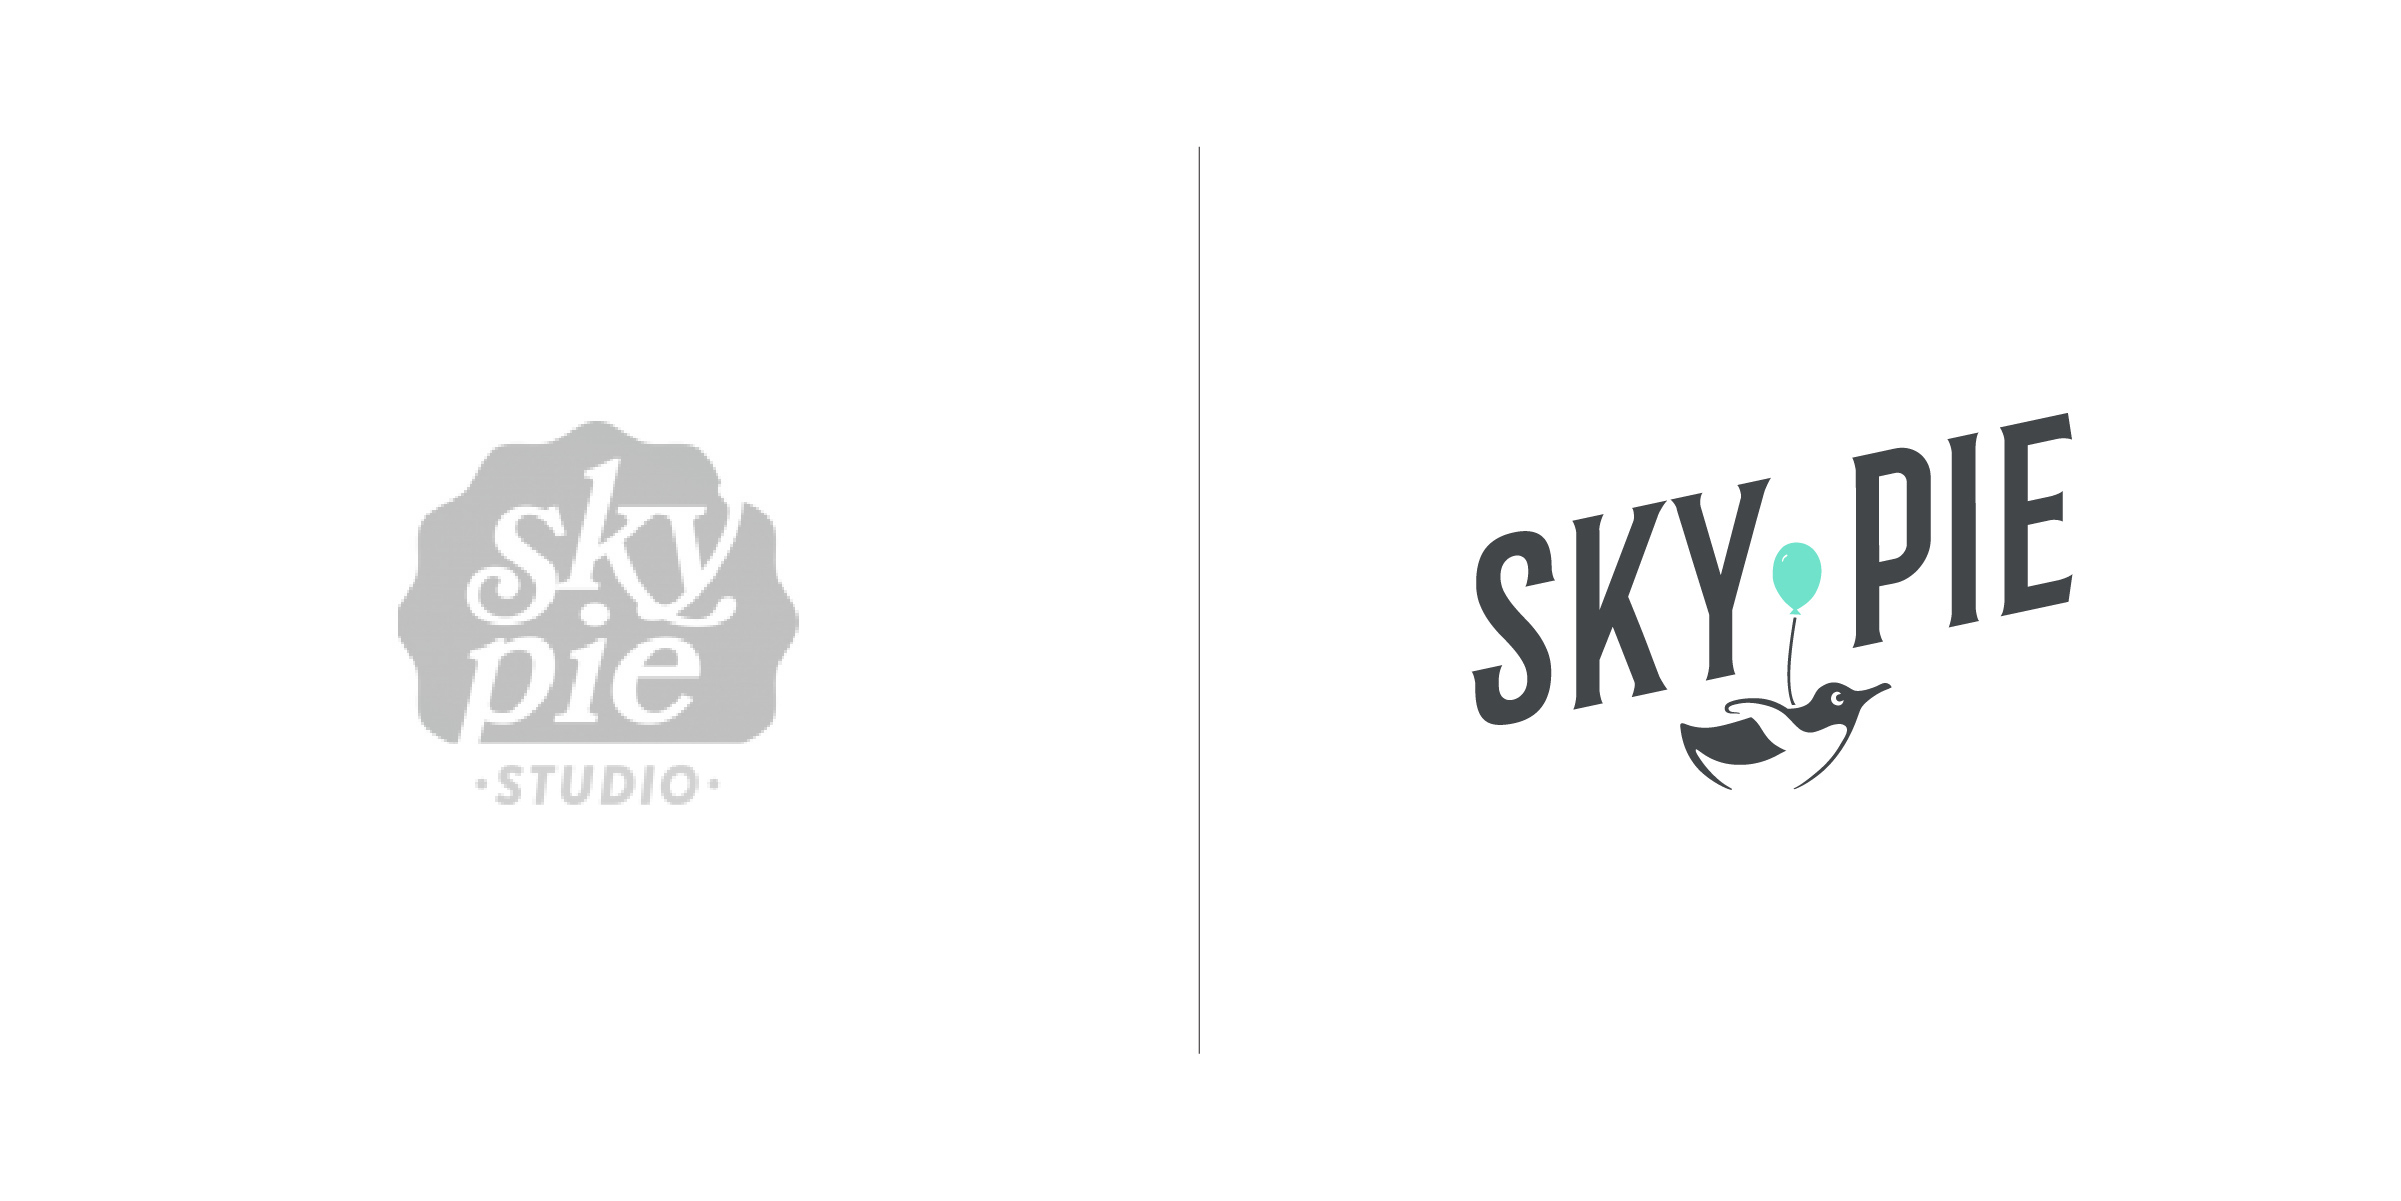 The client — Sky Pie Studios are purveyors of stop motion, animation, cinemagraphs, live action, and photography based in Brooklyn New York.  The goal — To craft a logo for Sky Pie that conveys its sense of playfulness and whimsy. We accomplished this by creating a delightful character for the brand in the form of an adorable penguin determined to take flight. As an animation studio it was also essential for the logo to have an element of motion. This was cleverly developed by Sky Pie to have the penguin subtly rotate and occasionally flap his wings — bringing the design to life even more!